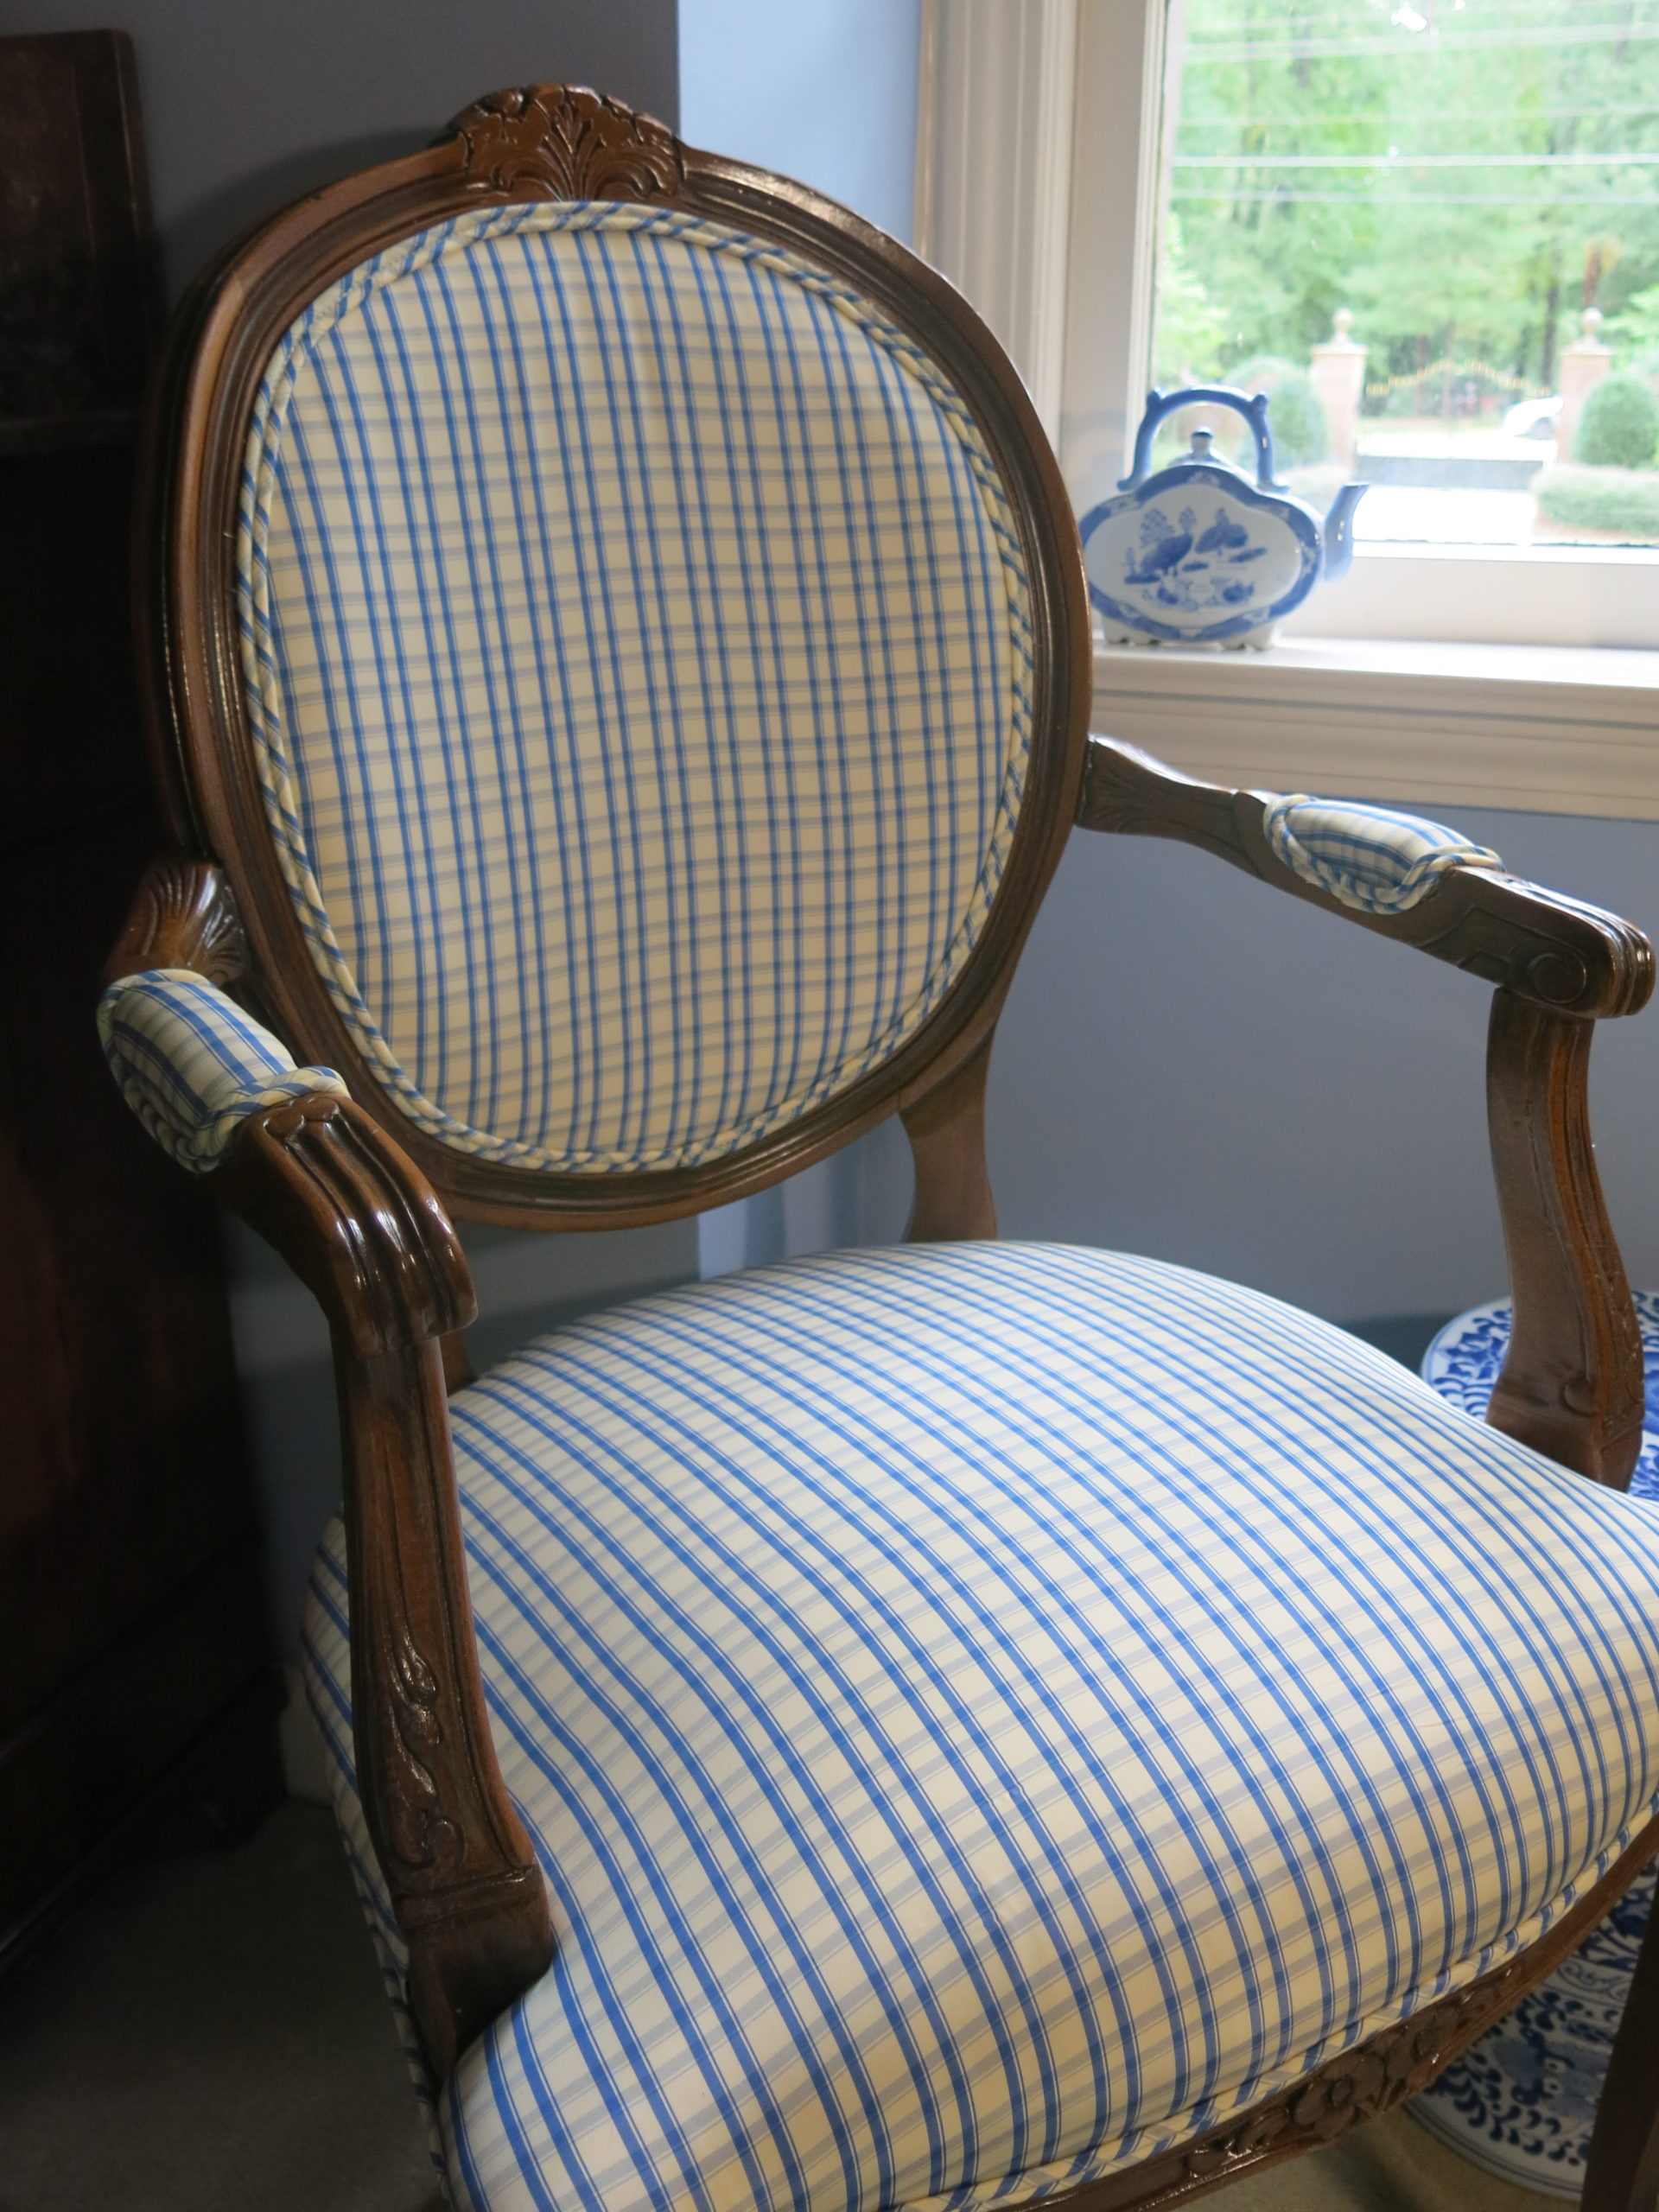 vintage chair with checkered pattern covers